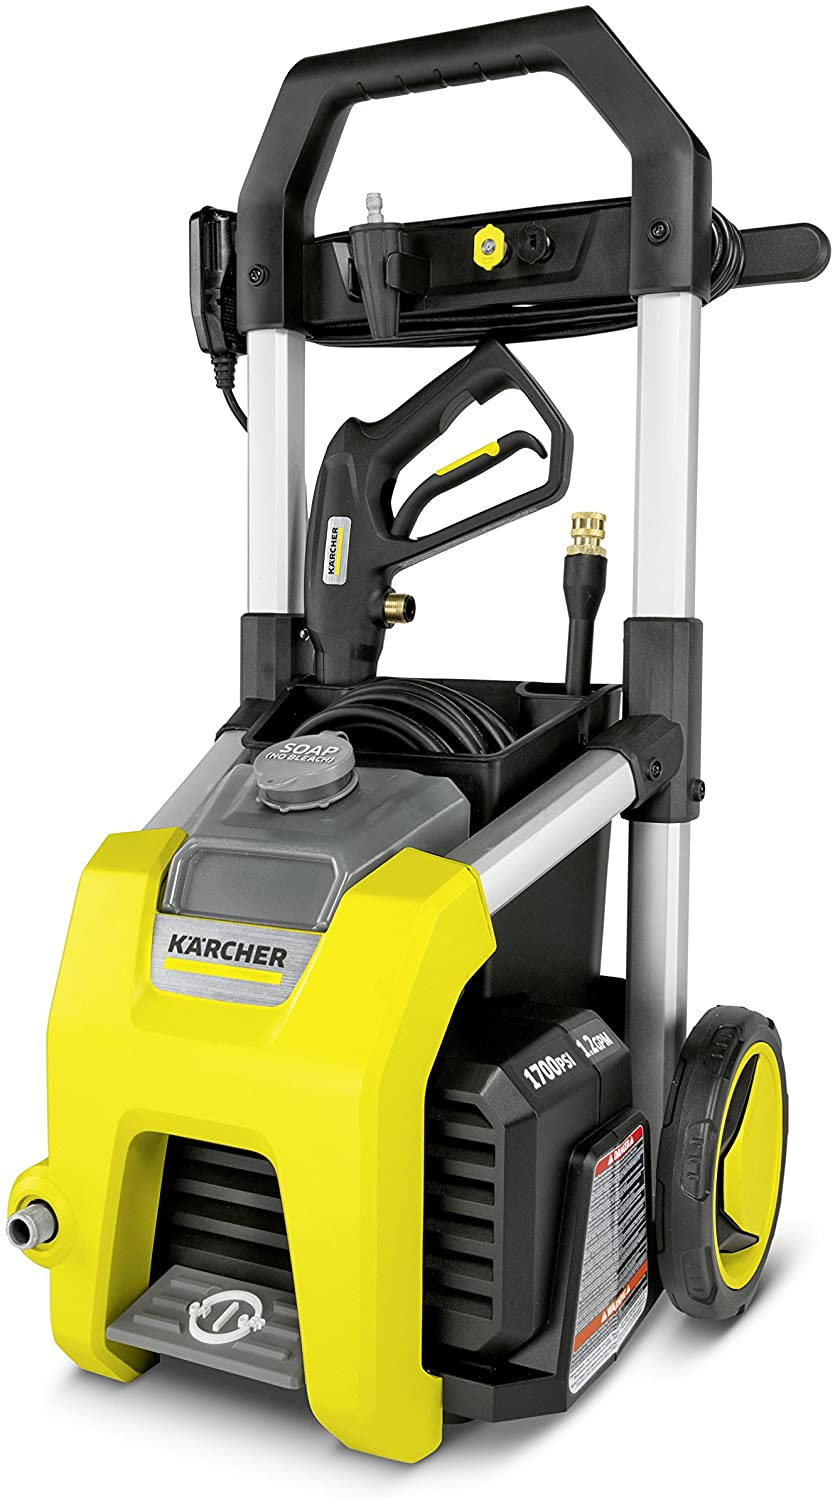 Karcher K1700 Electric Power Pressure Washer 1700 PSI TruPressure, 3-Year Warranty, Turbo Nozzle Included, Yellow : Garden & Outdoor